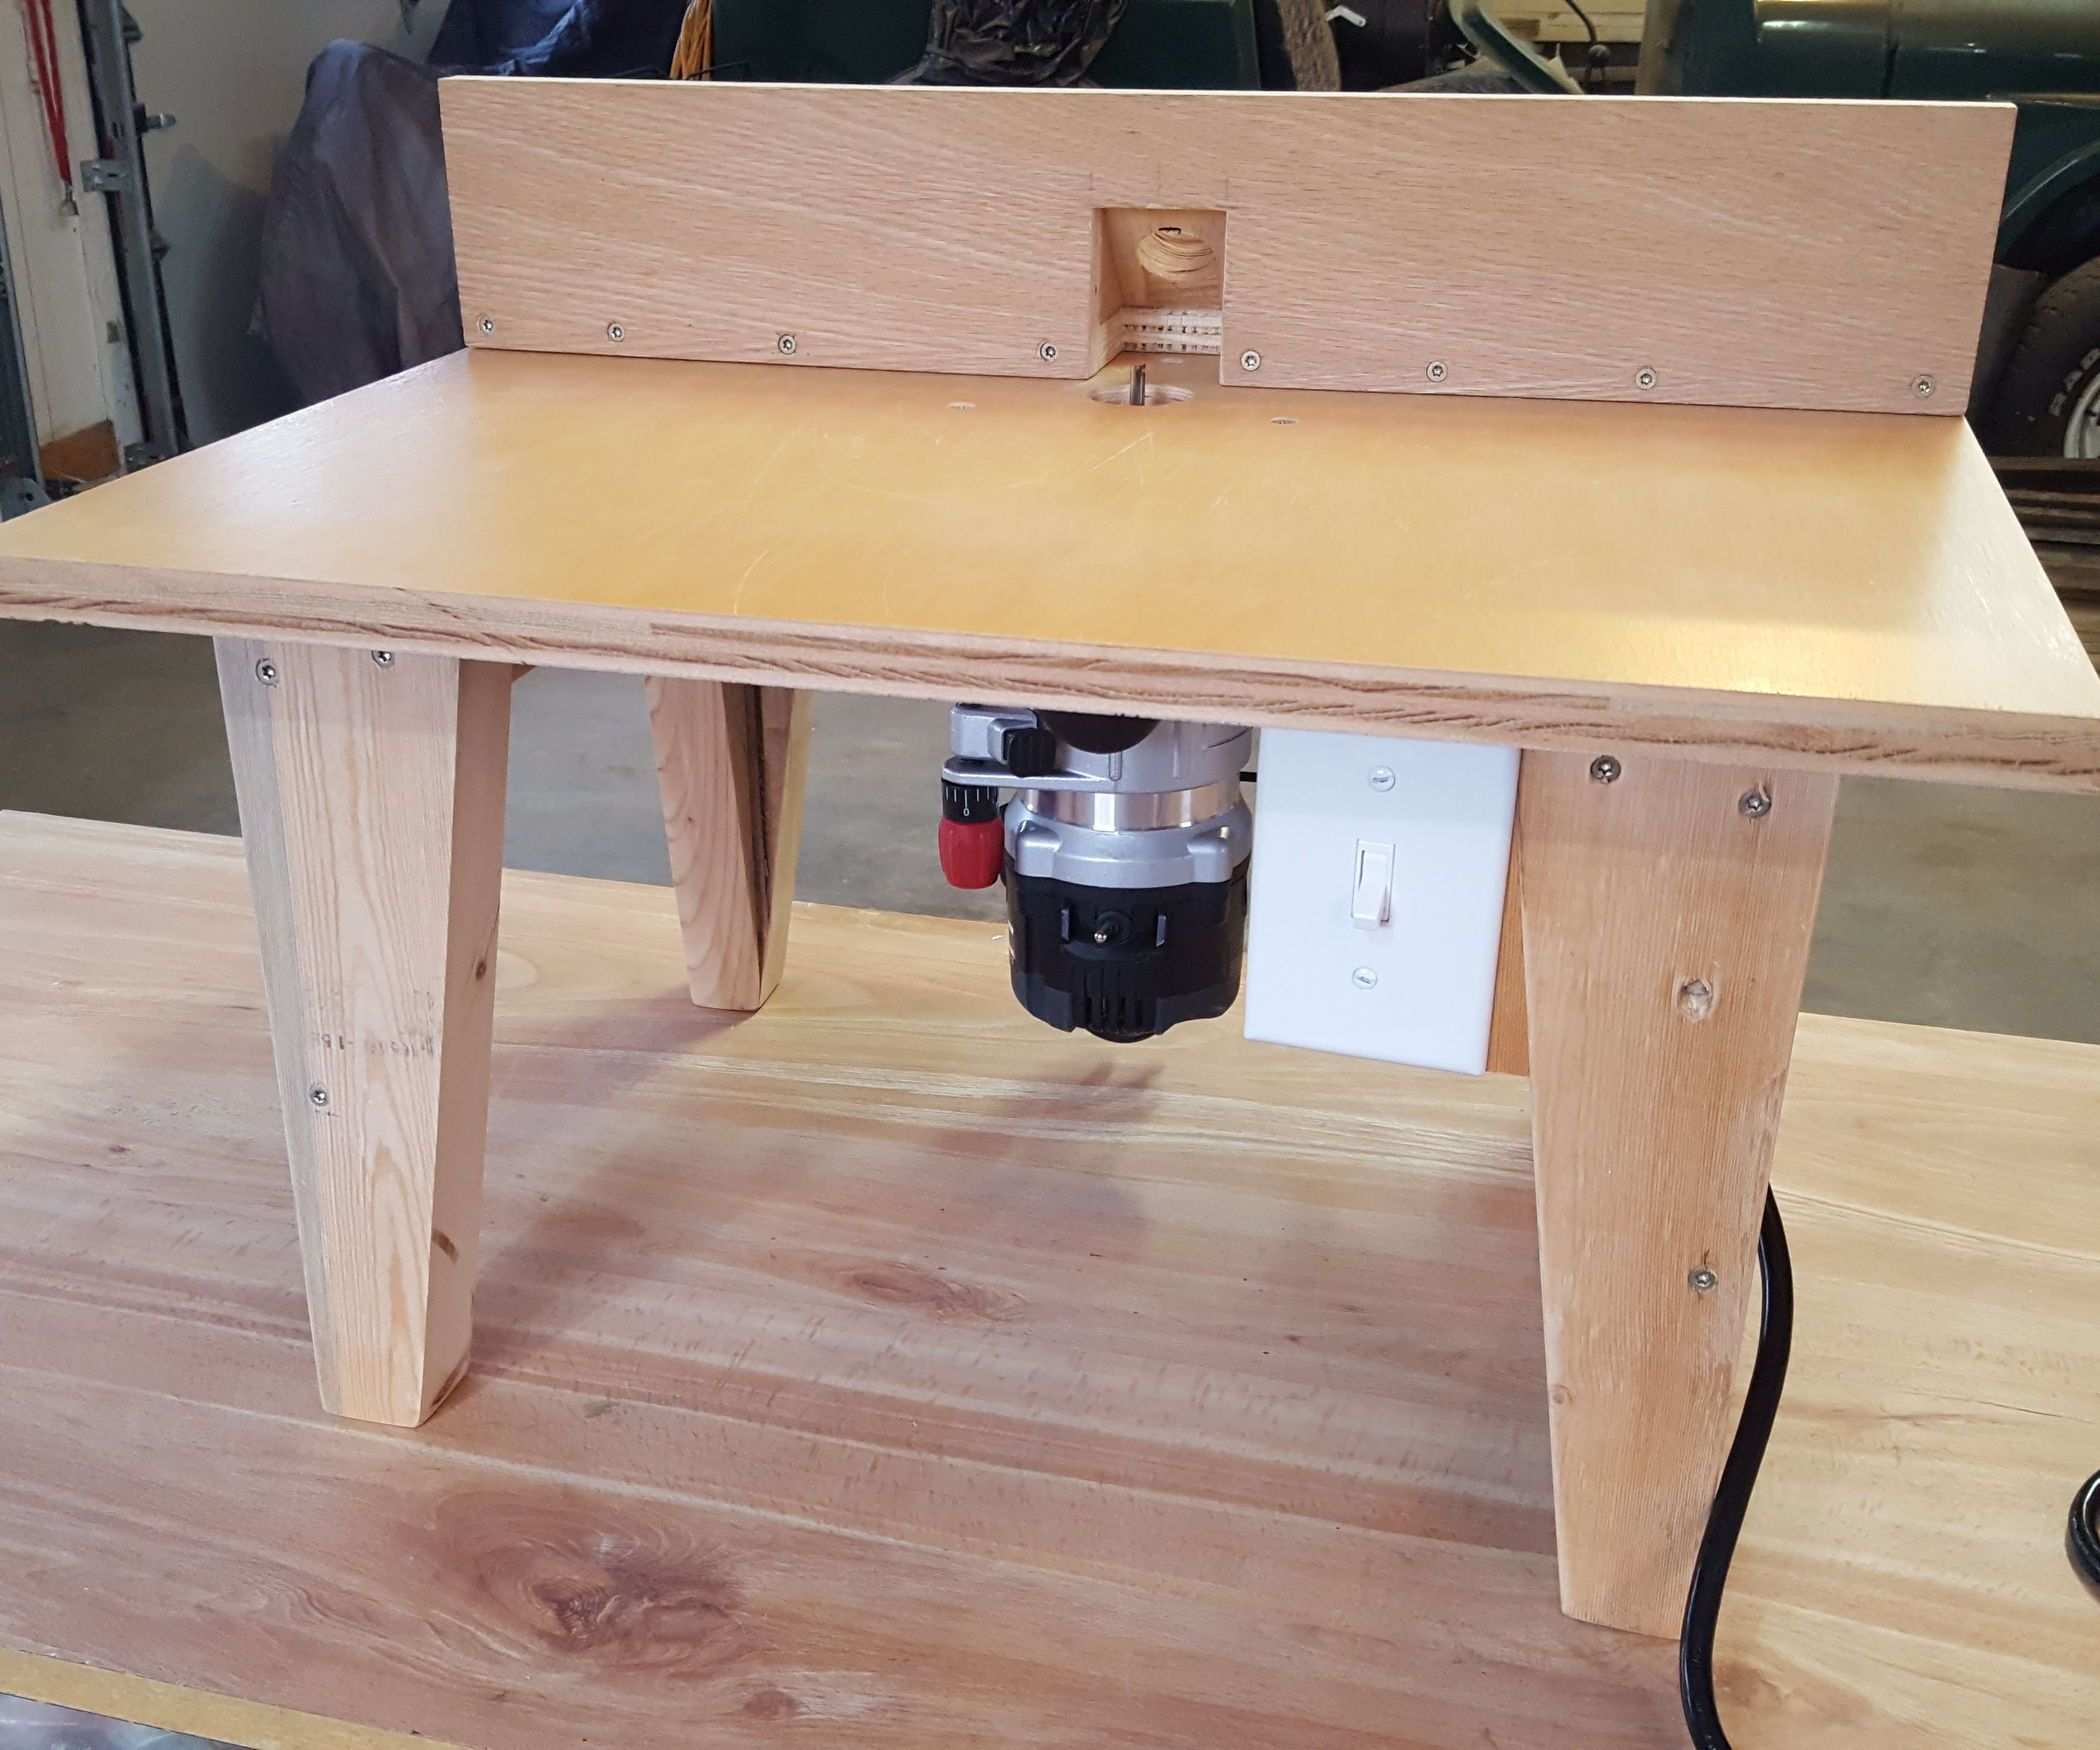 Craftsman Portable Table Saw With The Built In Router Table